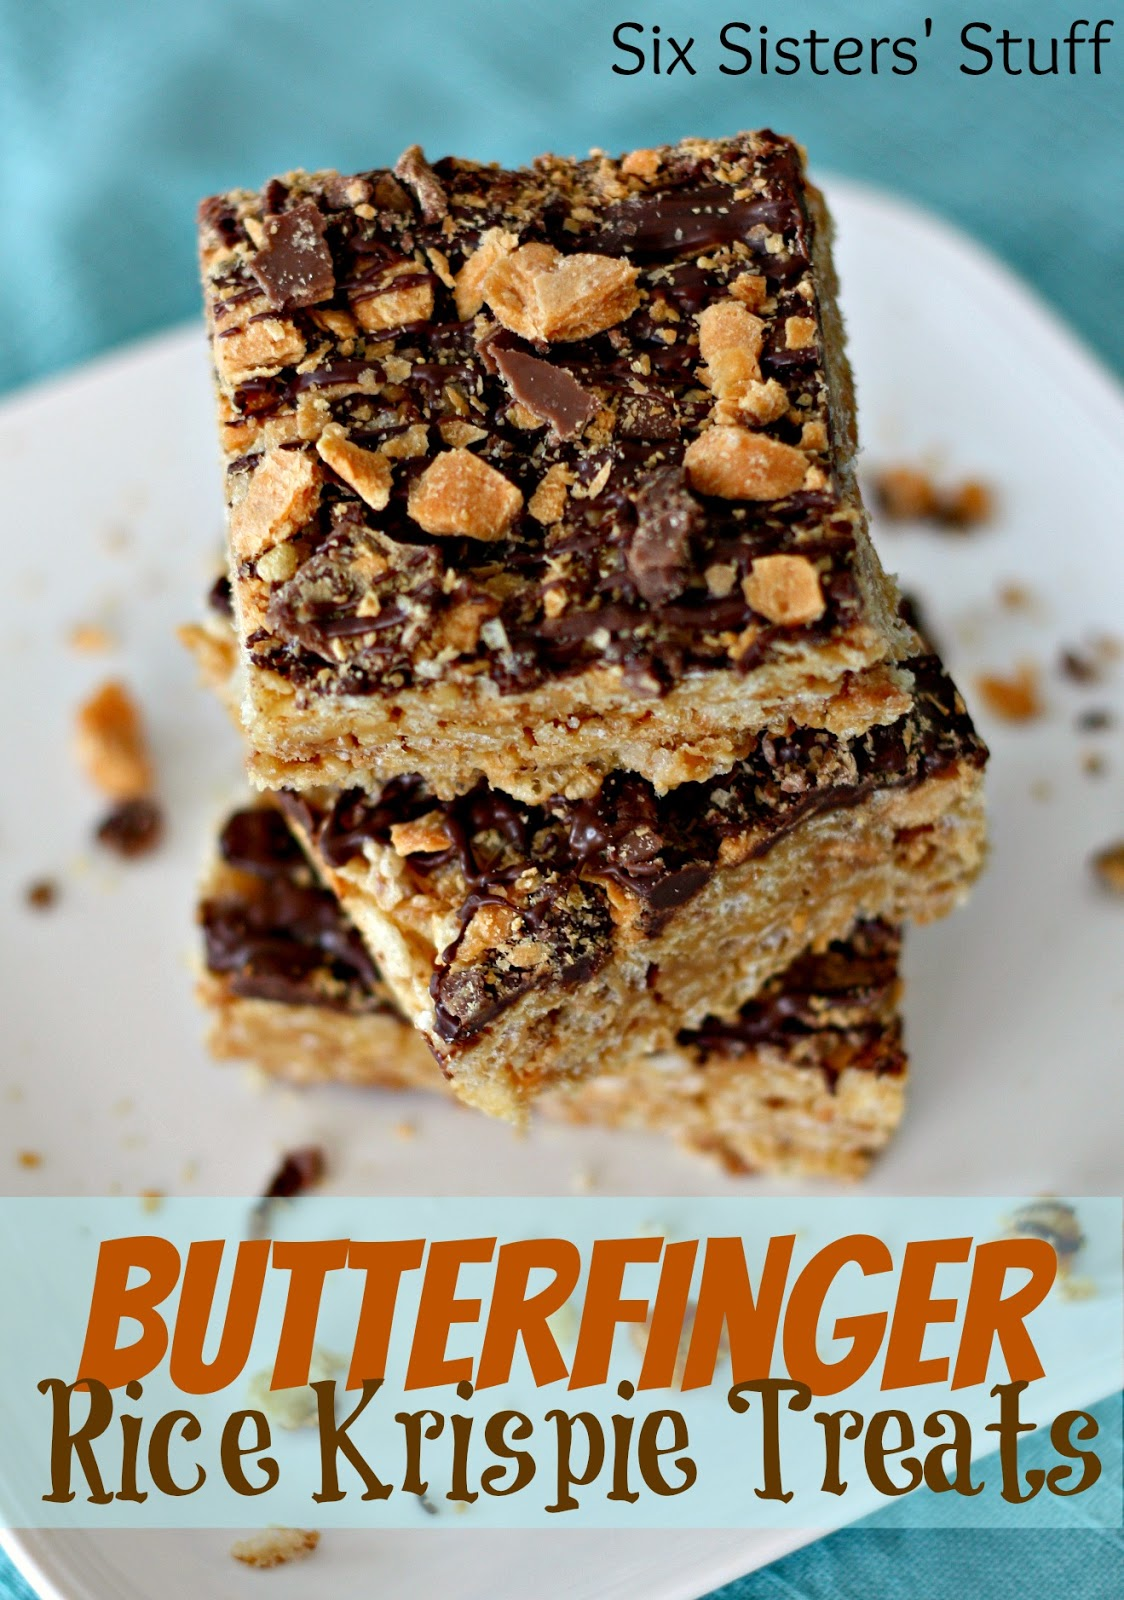 Butterfinger+Rice+Krispie+Treats.jpg